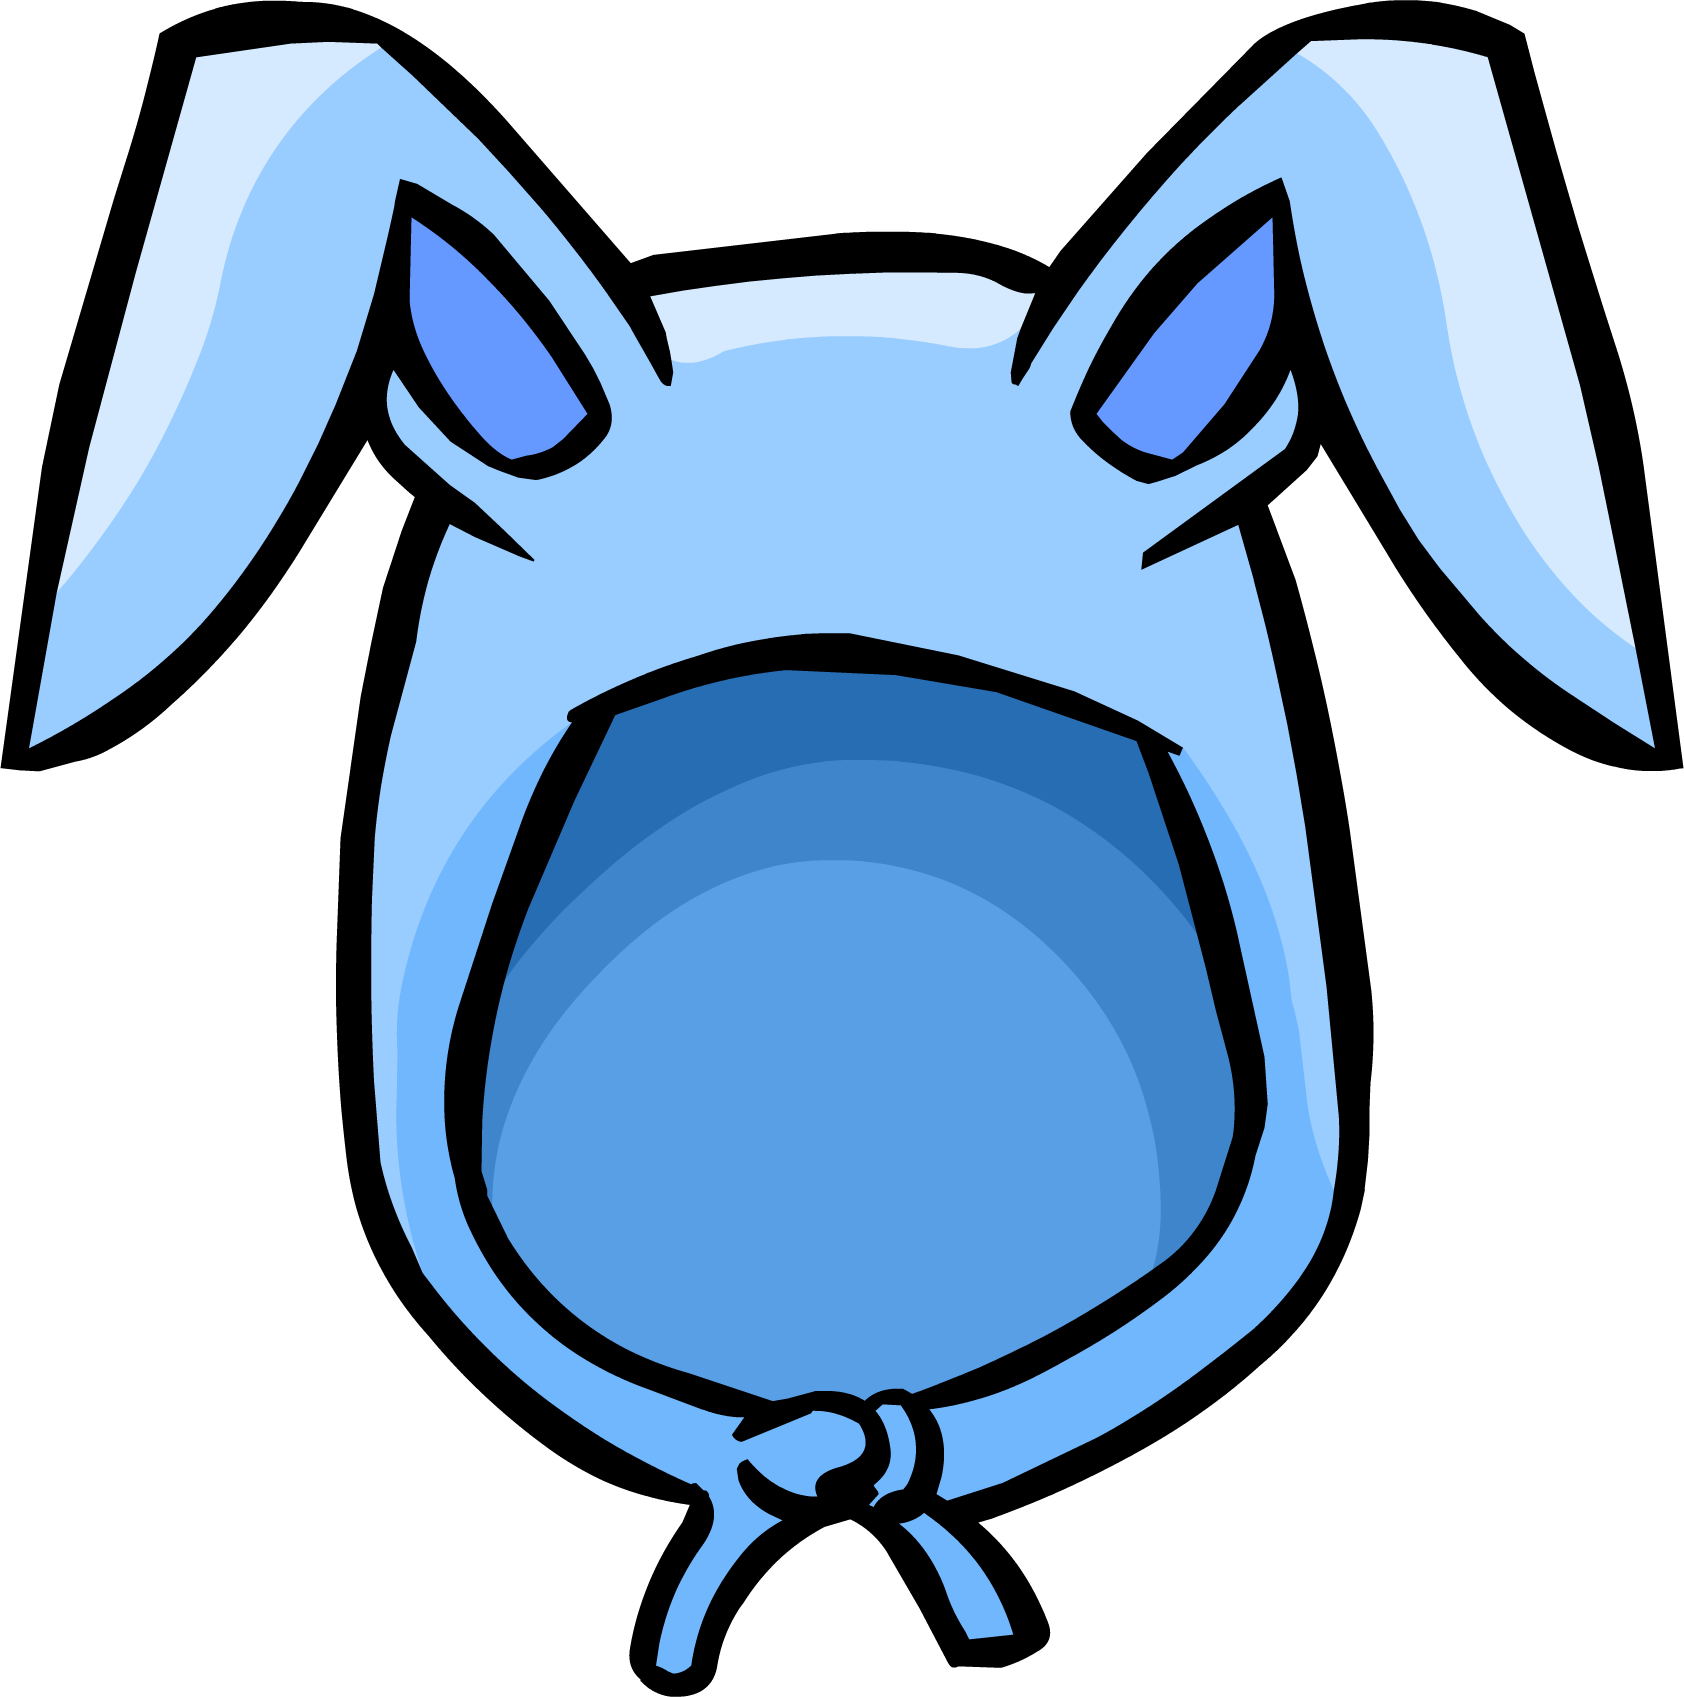 Ear clipart blue bunny. Image ears png club